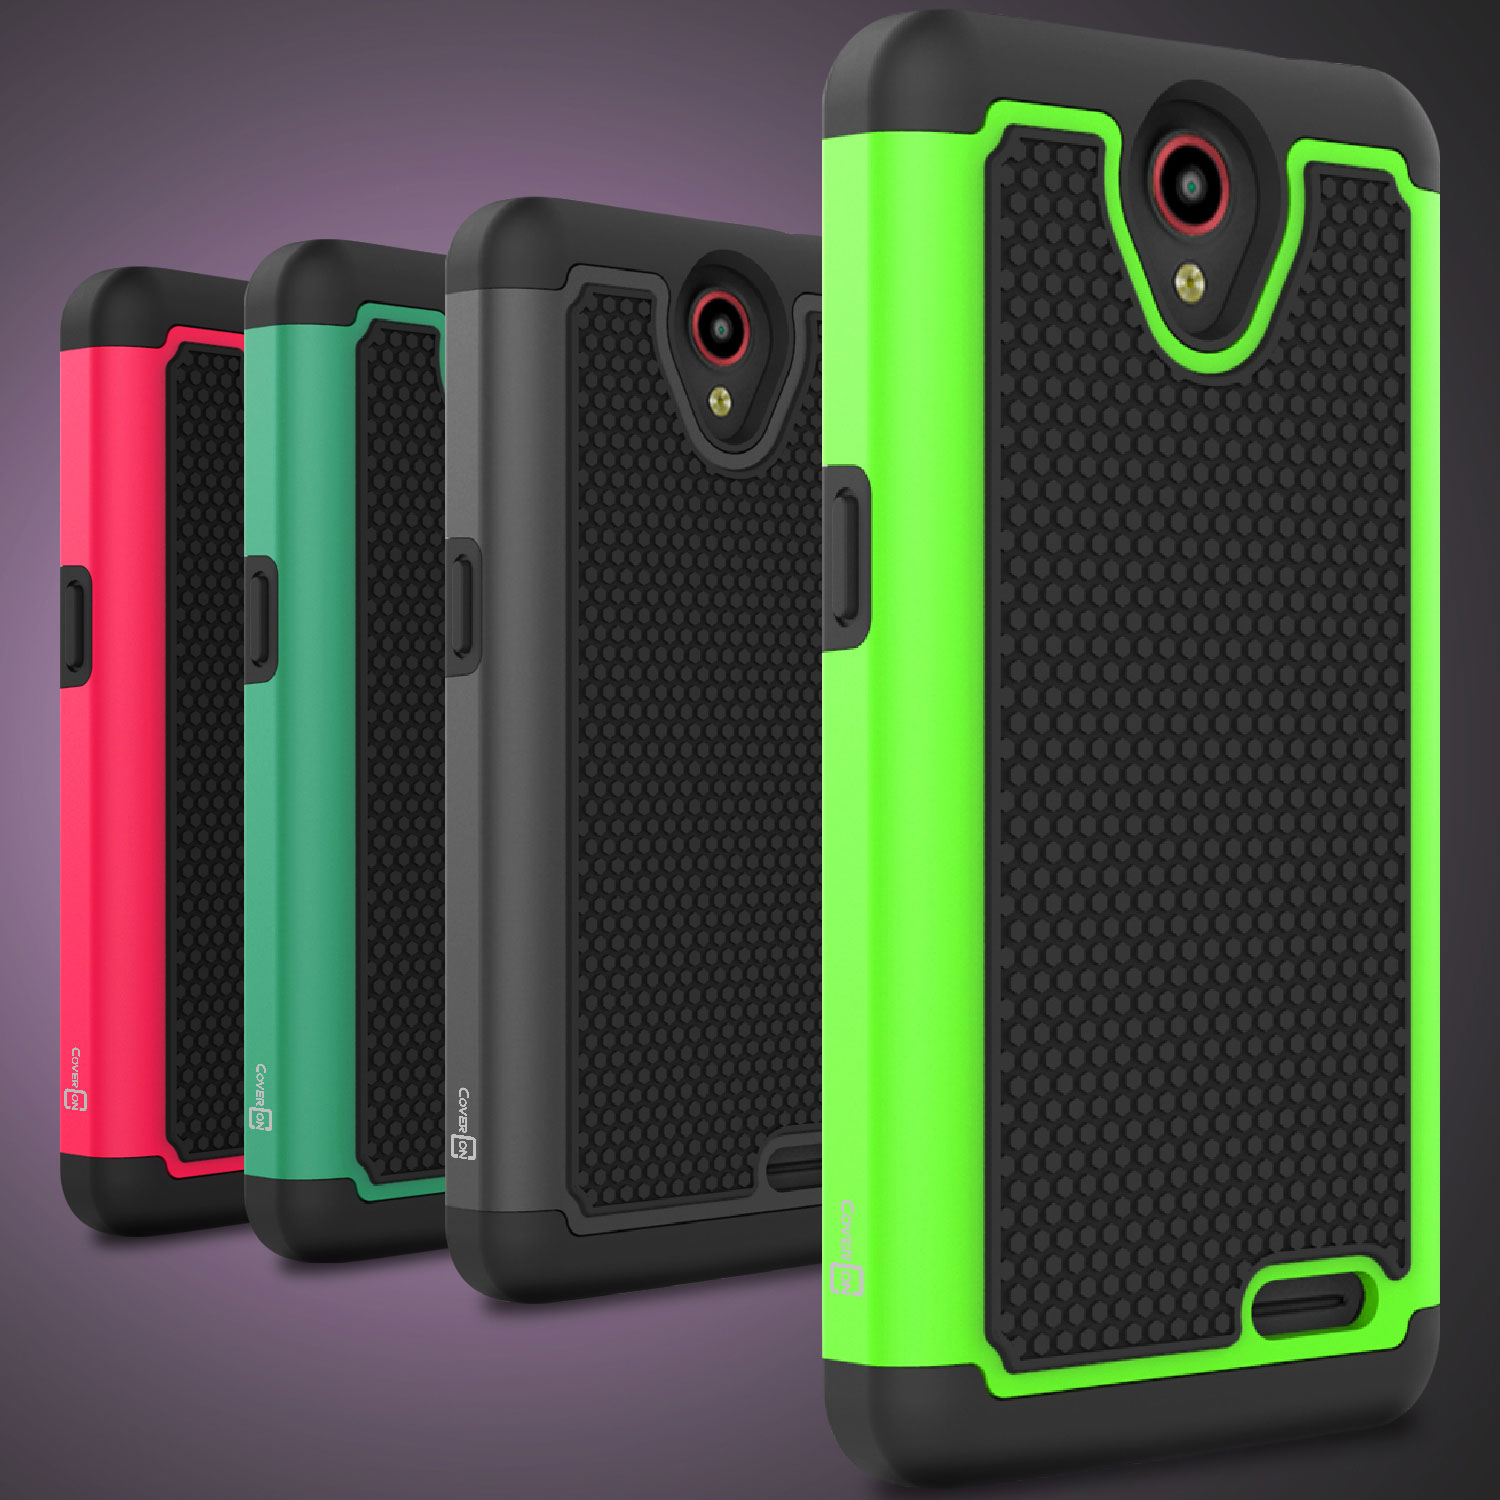 Details about Dual Layer Protective Hybrid Case for ZTE Avid Trio/ Avid  Plus/ ZFive 2